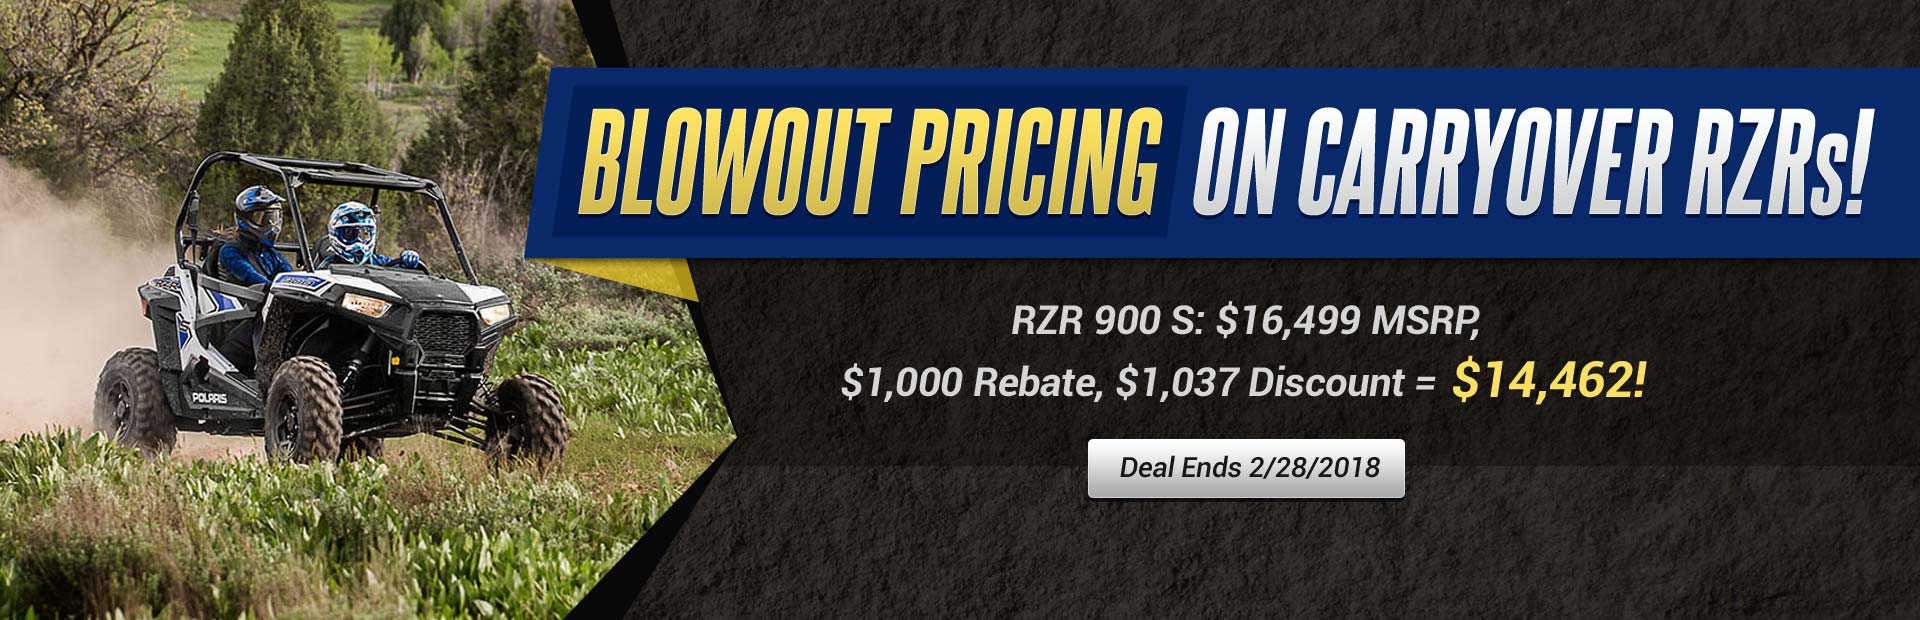 Blowout Pricing on Carryover RZRs: Hurry, this deal ends 2/28/2018!